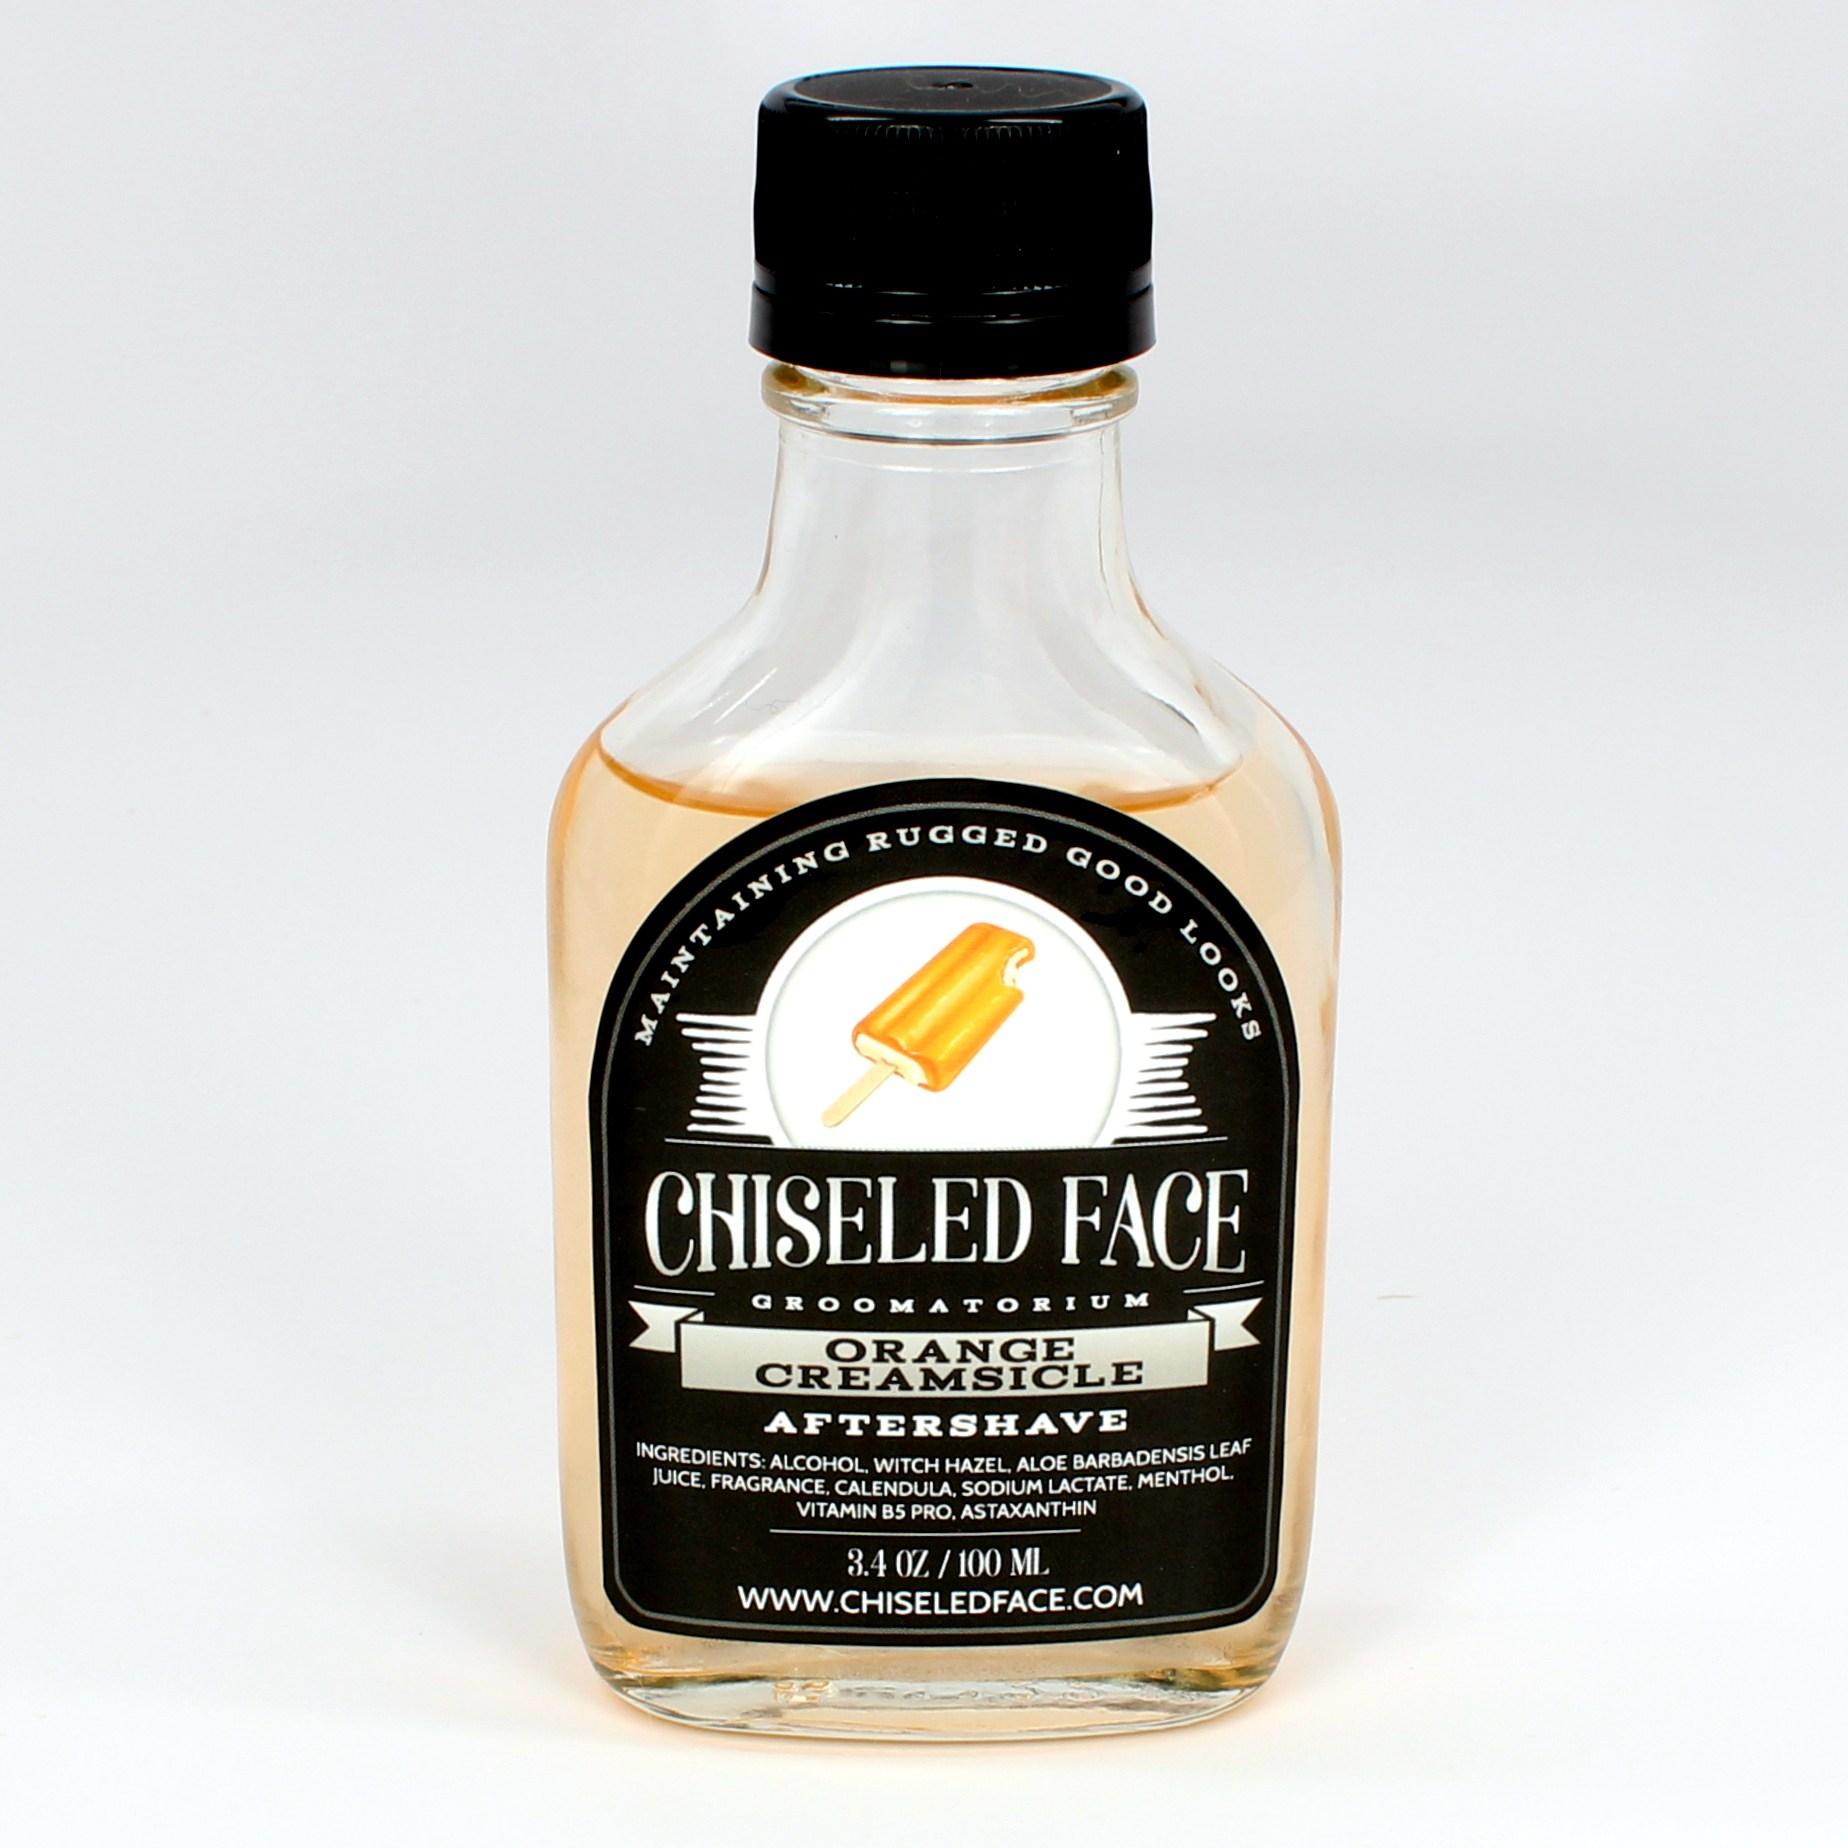 Chiseled Face - Orange Creamsicle - Aftershave image